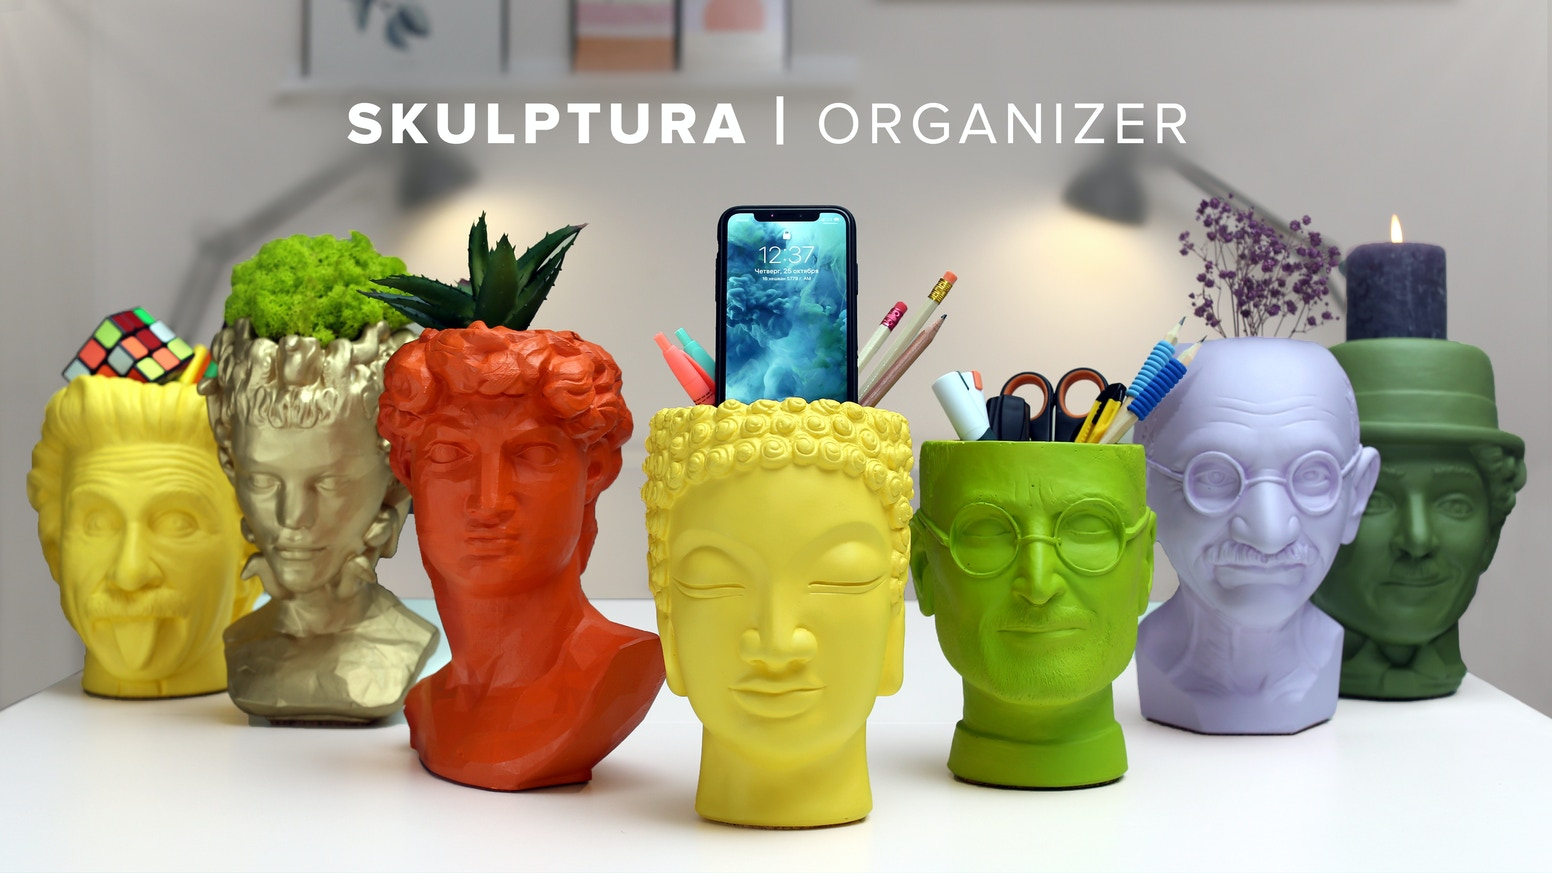 Colorful and stylish desk organizers in the shape of legendary persons. Made from gypsum, coated with non-toxic eco paint.